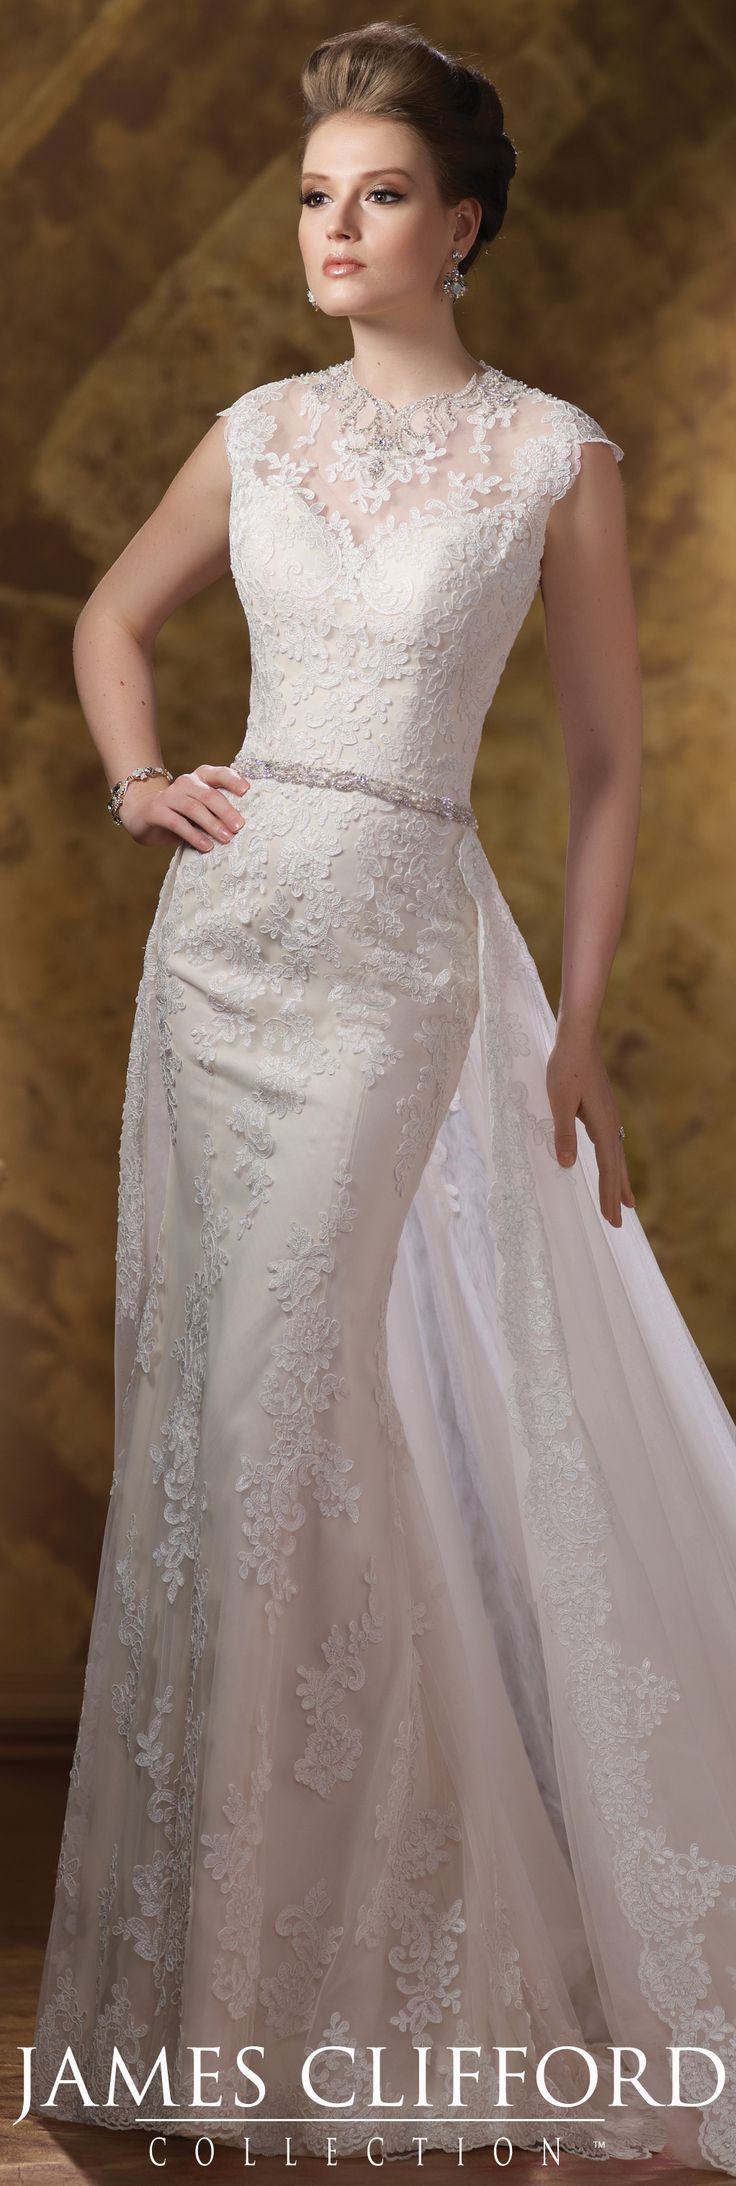 The James Clifford Fall 2015 Wedding Dress Collection - Style No. J21502 #laceweddingdress